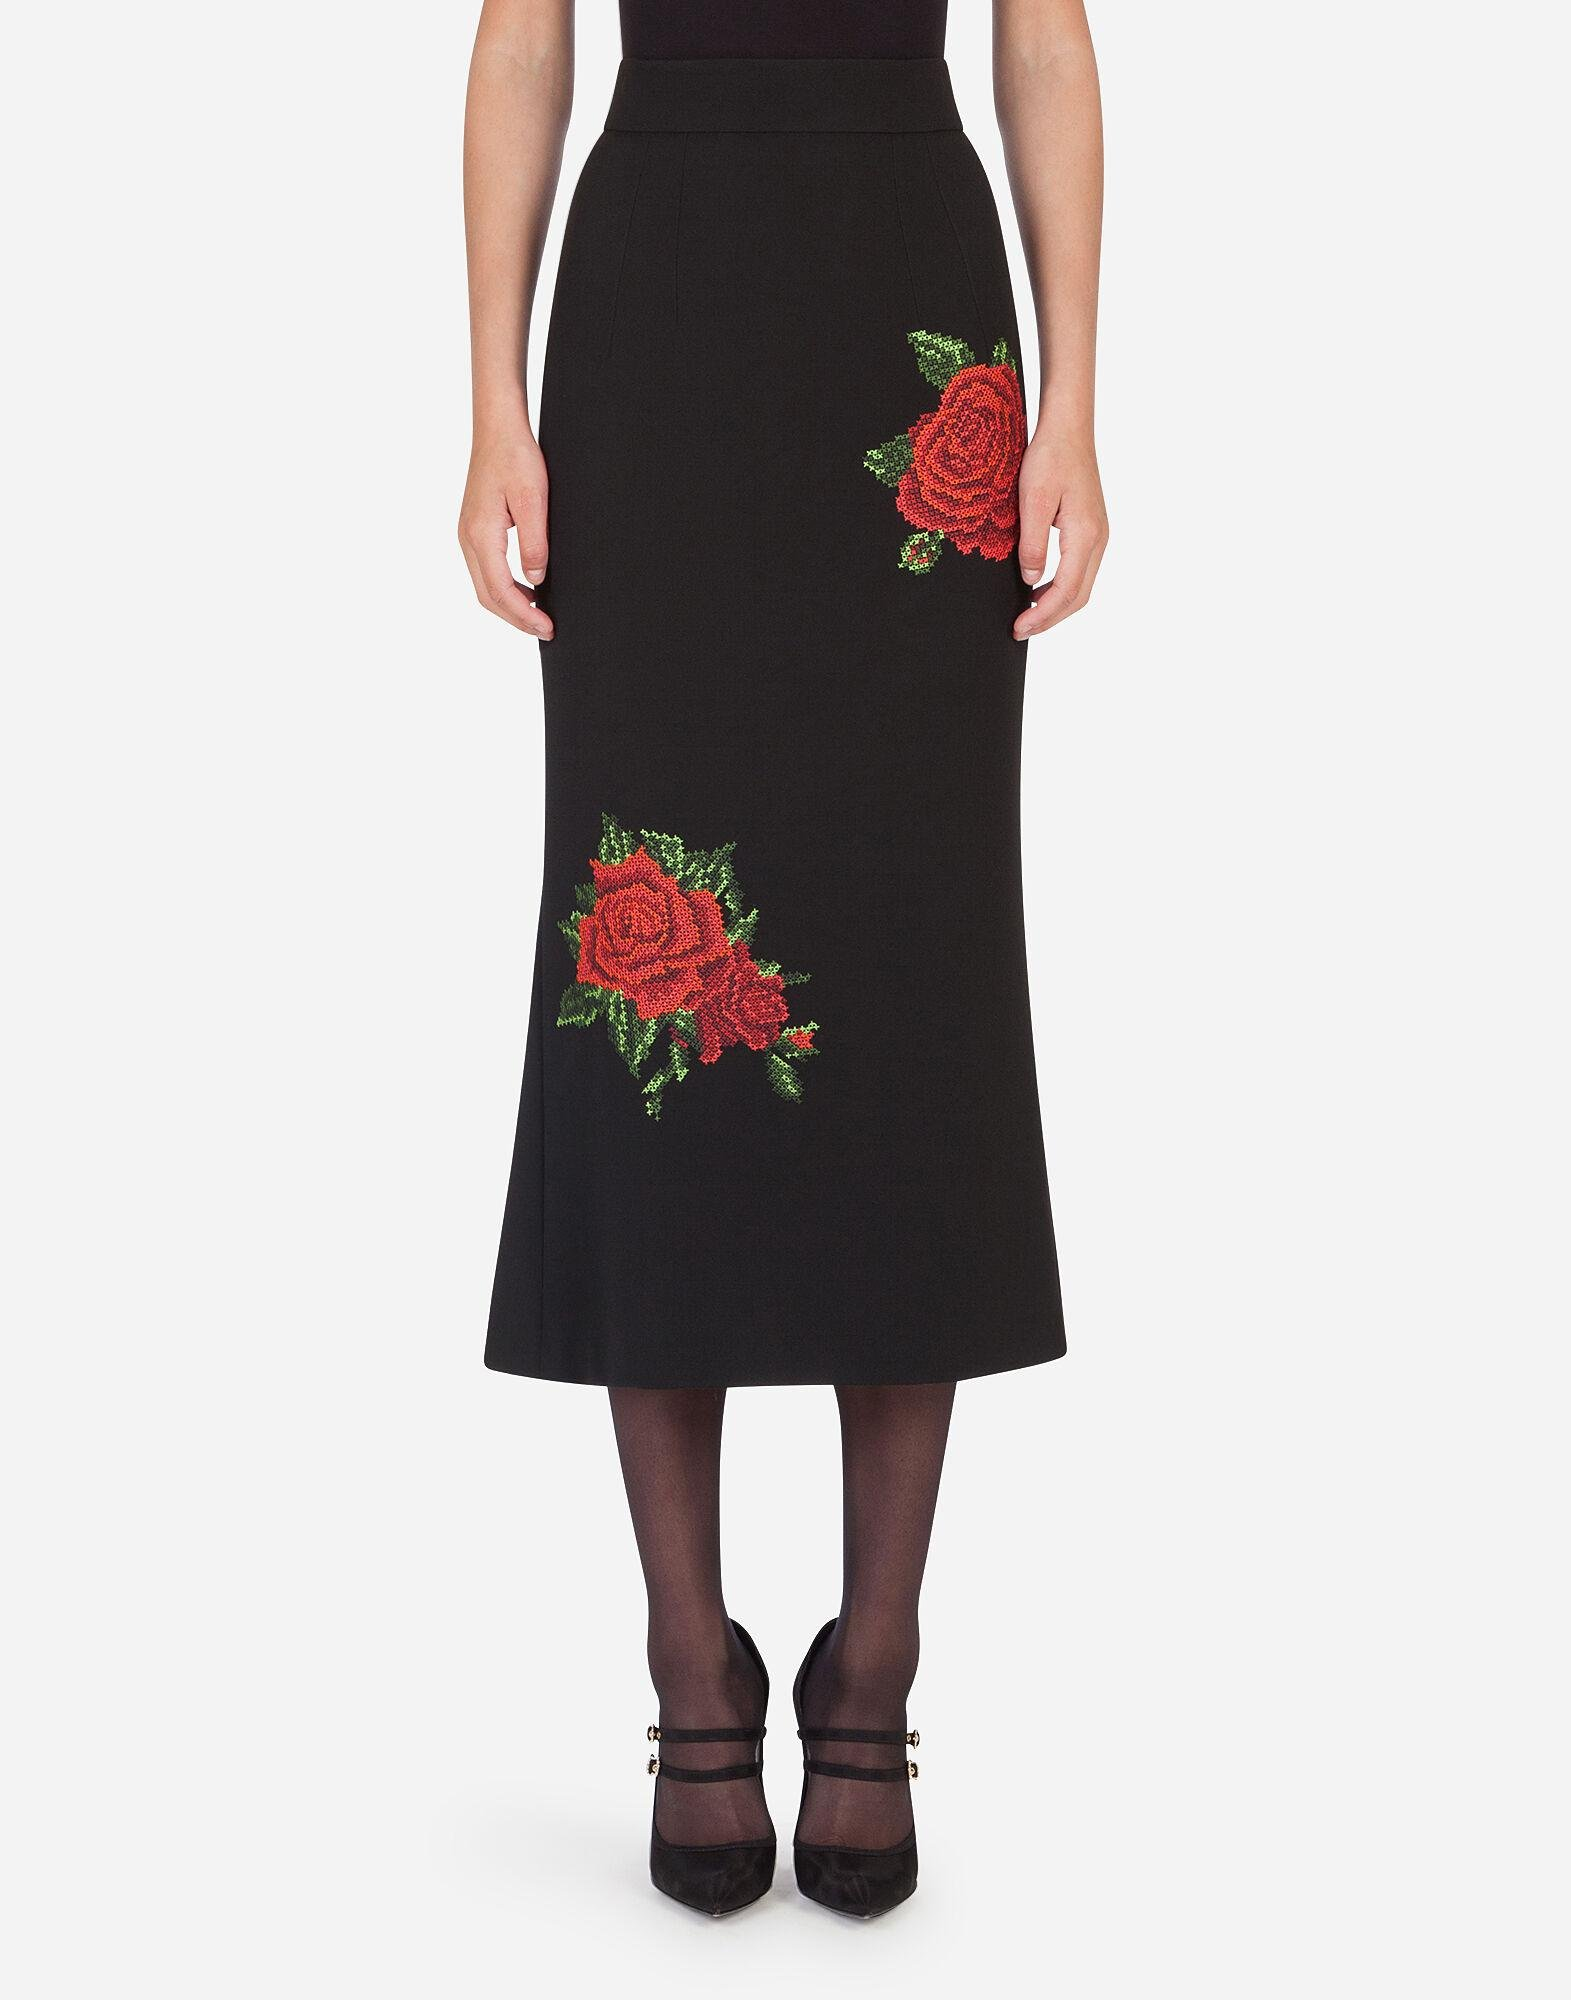 Pencil skirt with rose embroidery